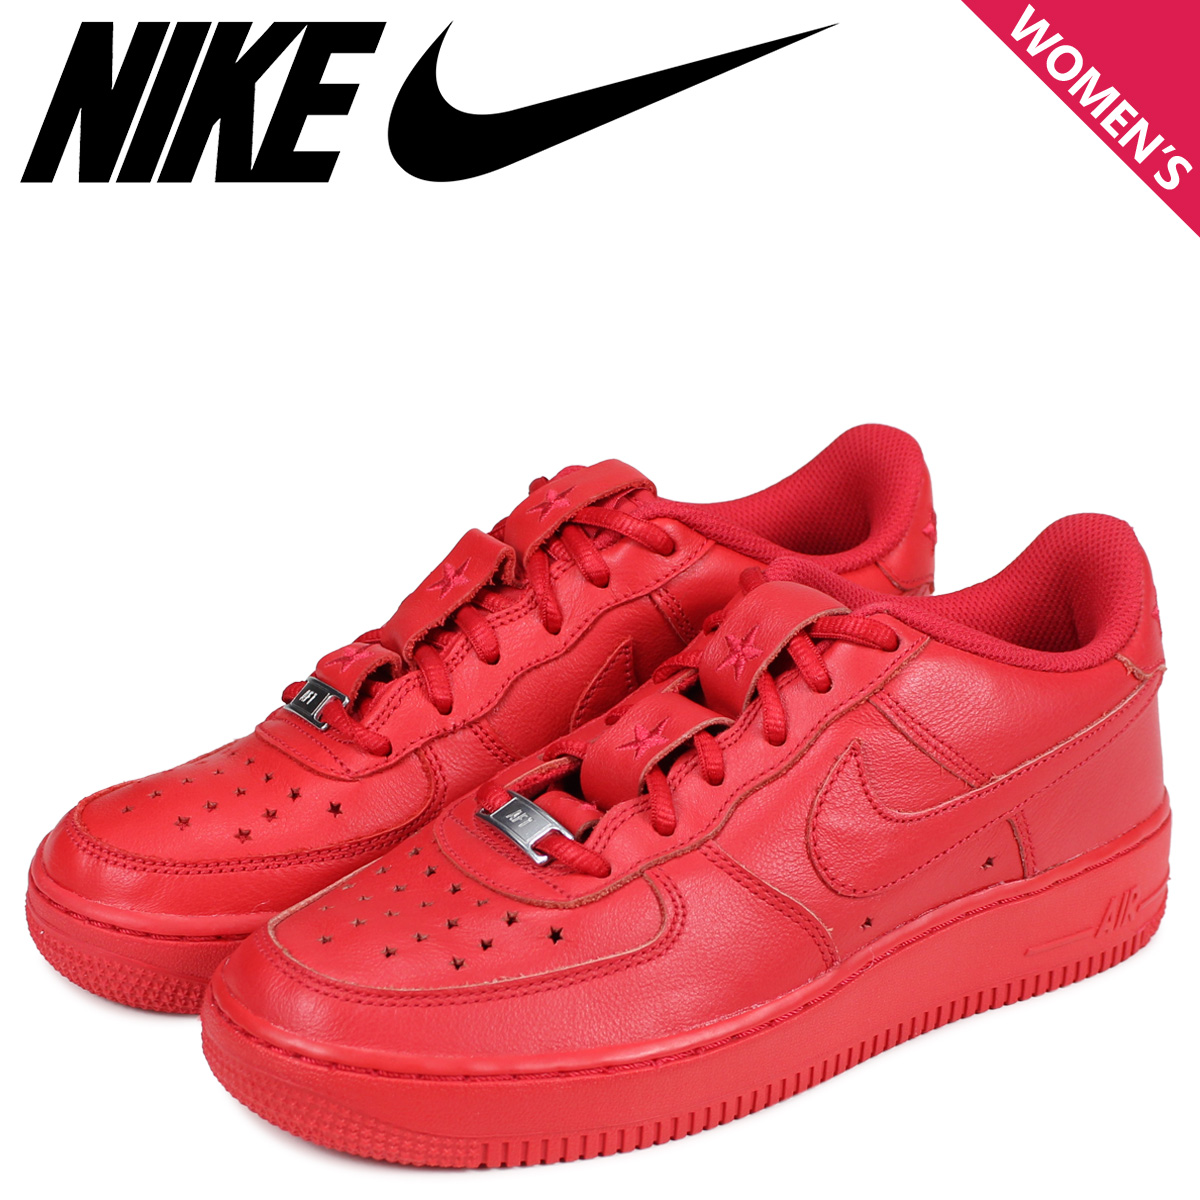 NIKE ナイキ エアフォース1 スニーカー レディース AIR FORCE 1 LOW GS INDEPENDENCE DAY PACK レッド AR0688-600 [予約商品 4/3頃入荷予定 新入荷]